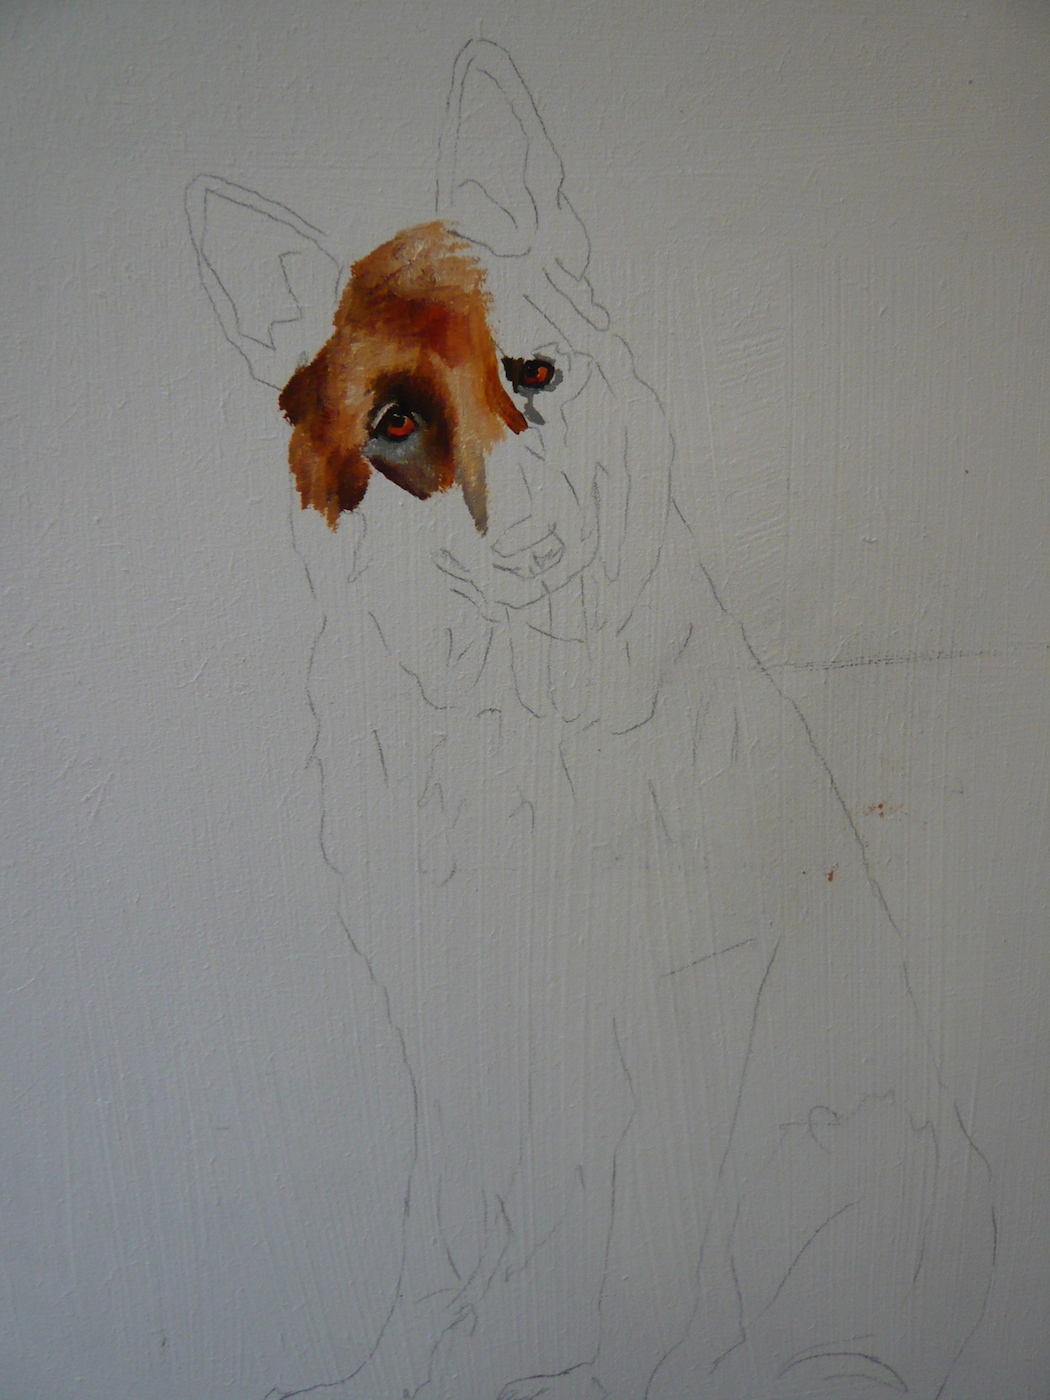 2nd work in progress photo of a German Shepherd, painting the eye. A pet portrait by Karen.